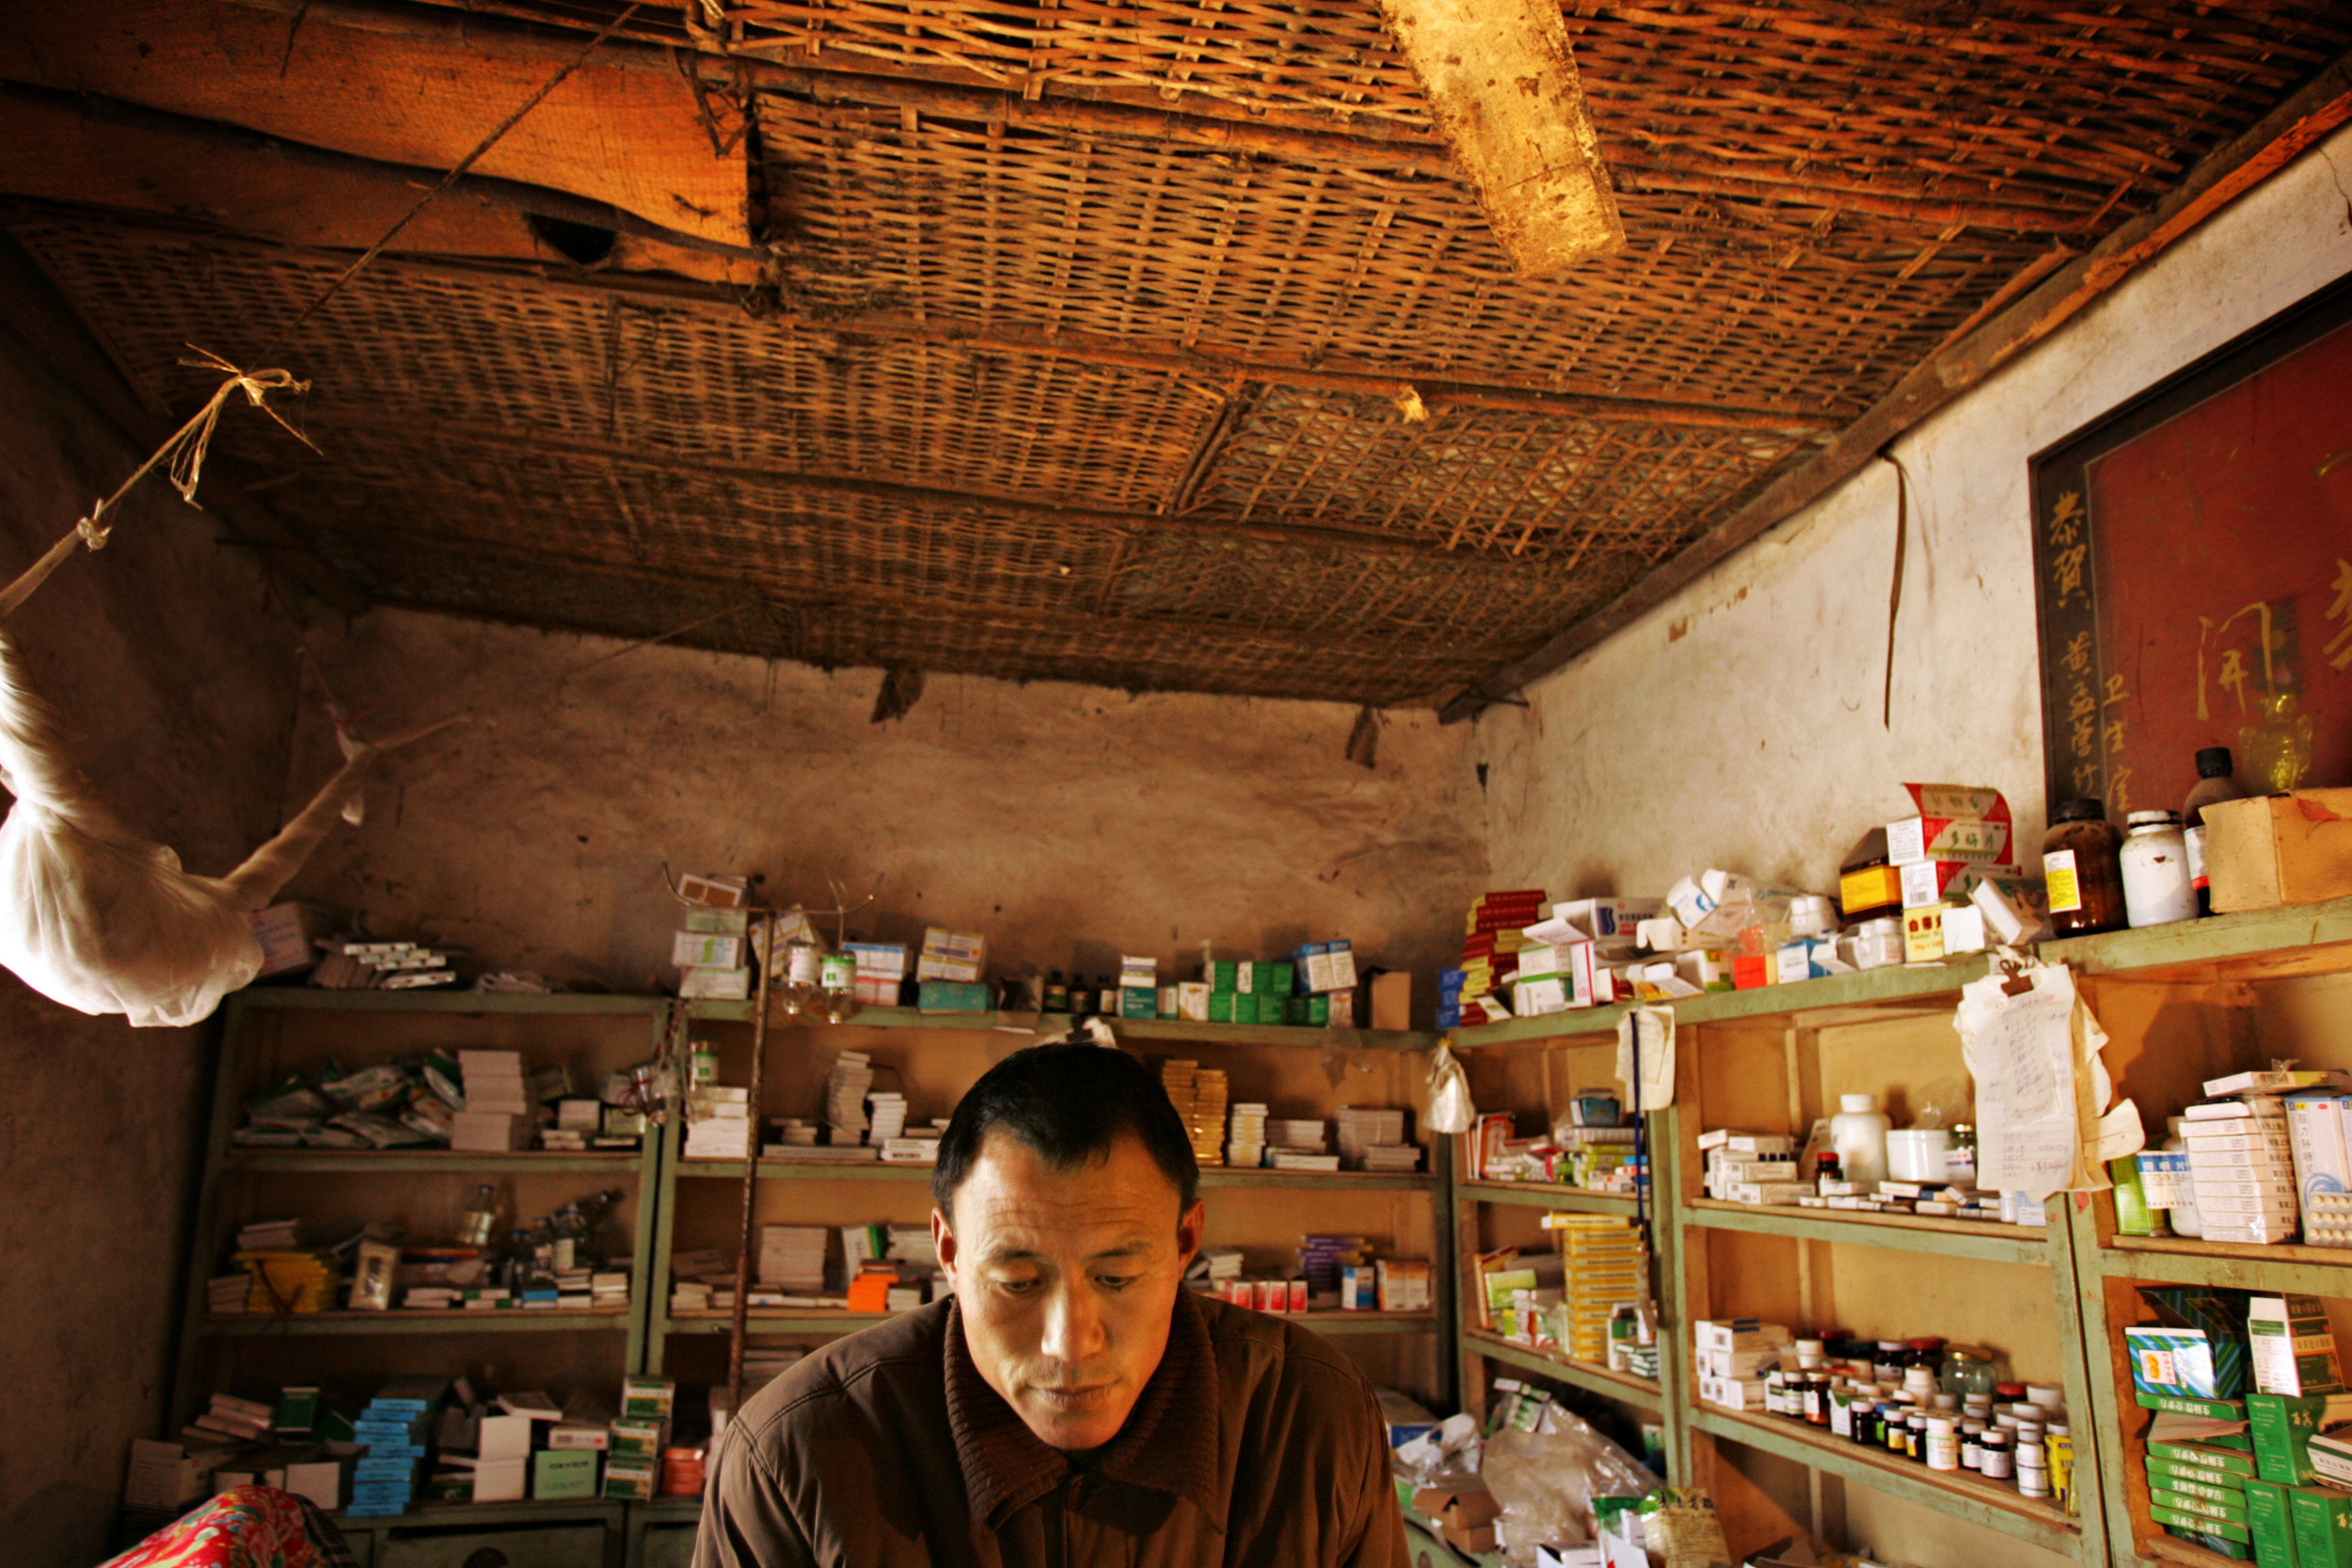 Wang Shiweu, 42, is an accountant by training, and operates the medical clinic in Huangmengying. He dispenses traditional Chinese medicine to villagers, most of whom are no longer able to afford conventional treatment for cancer.